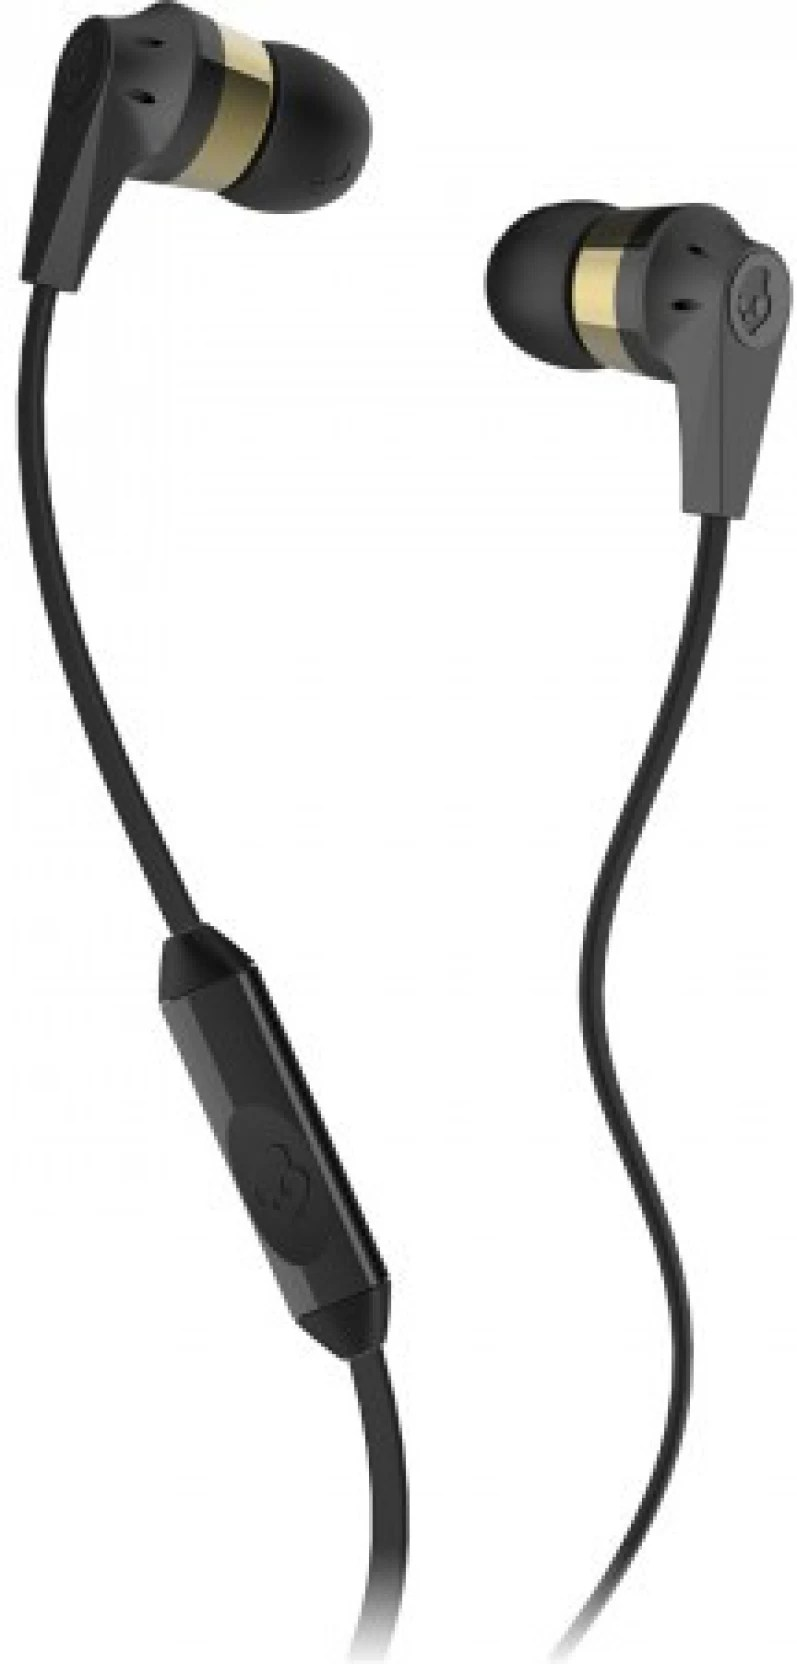 small resolution of skullcandy s2ikdy 144 wired headset with mic gold black in the ear